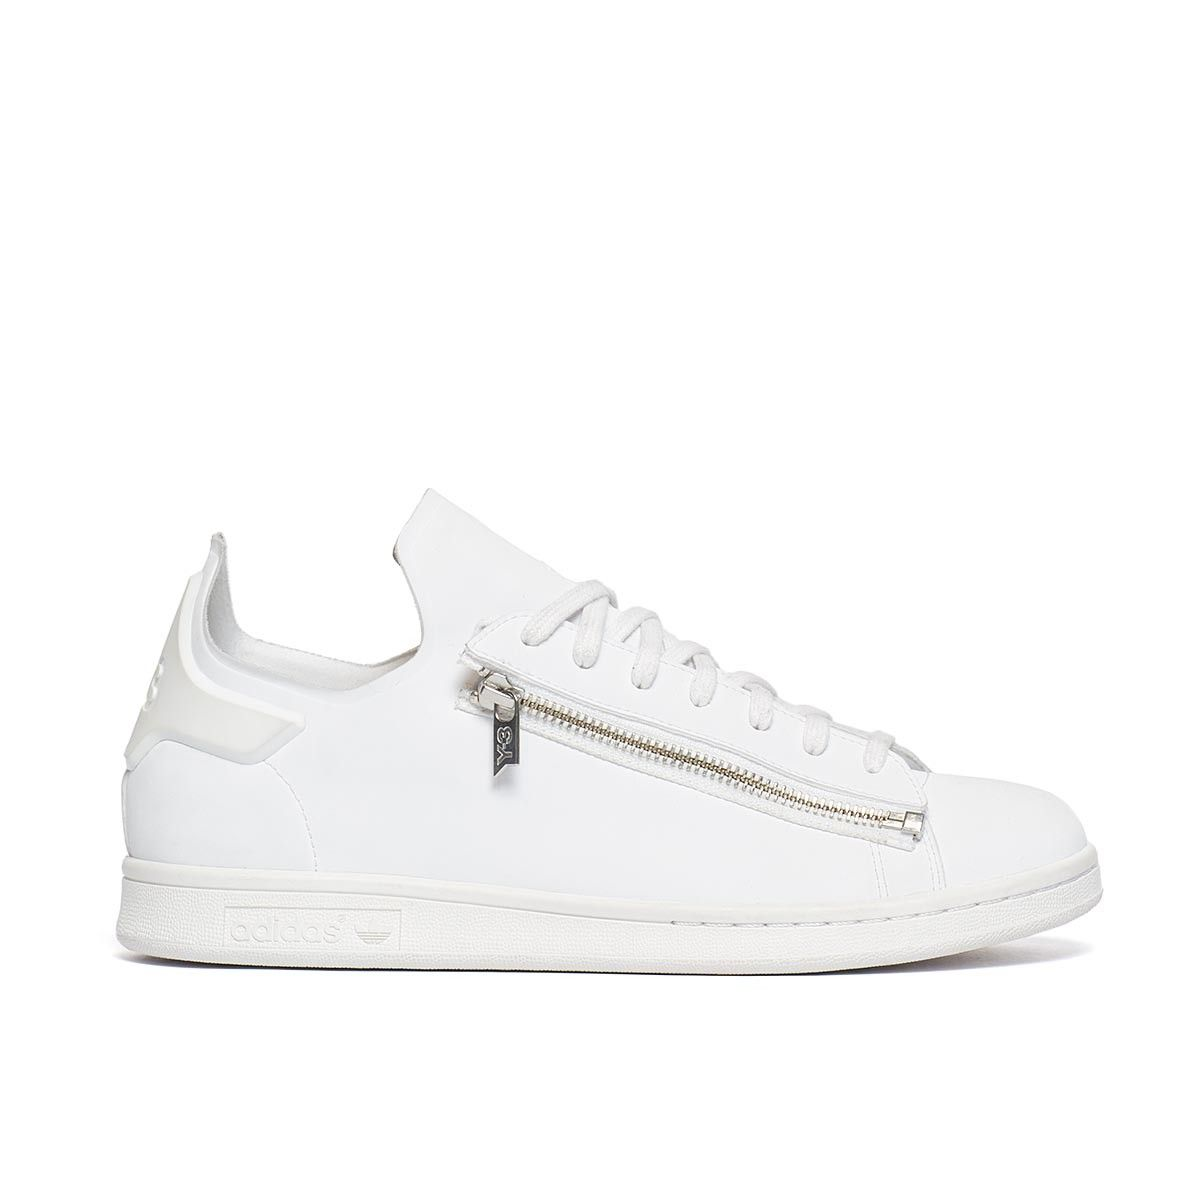 48de1d6017536 Delivery by August 31 Stan zip sneakers from the F W2016-17 Y-3 by Yohji  Yamamoto collection in white Launched in 2002